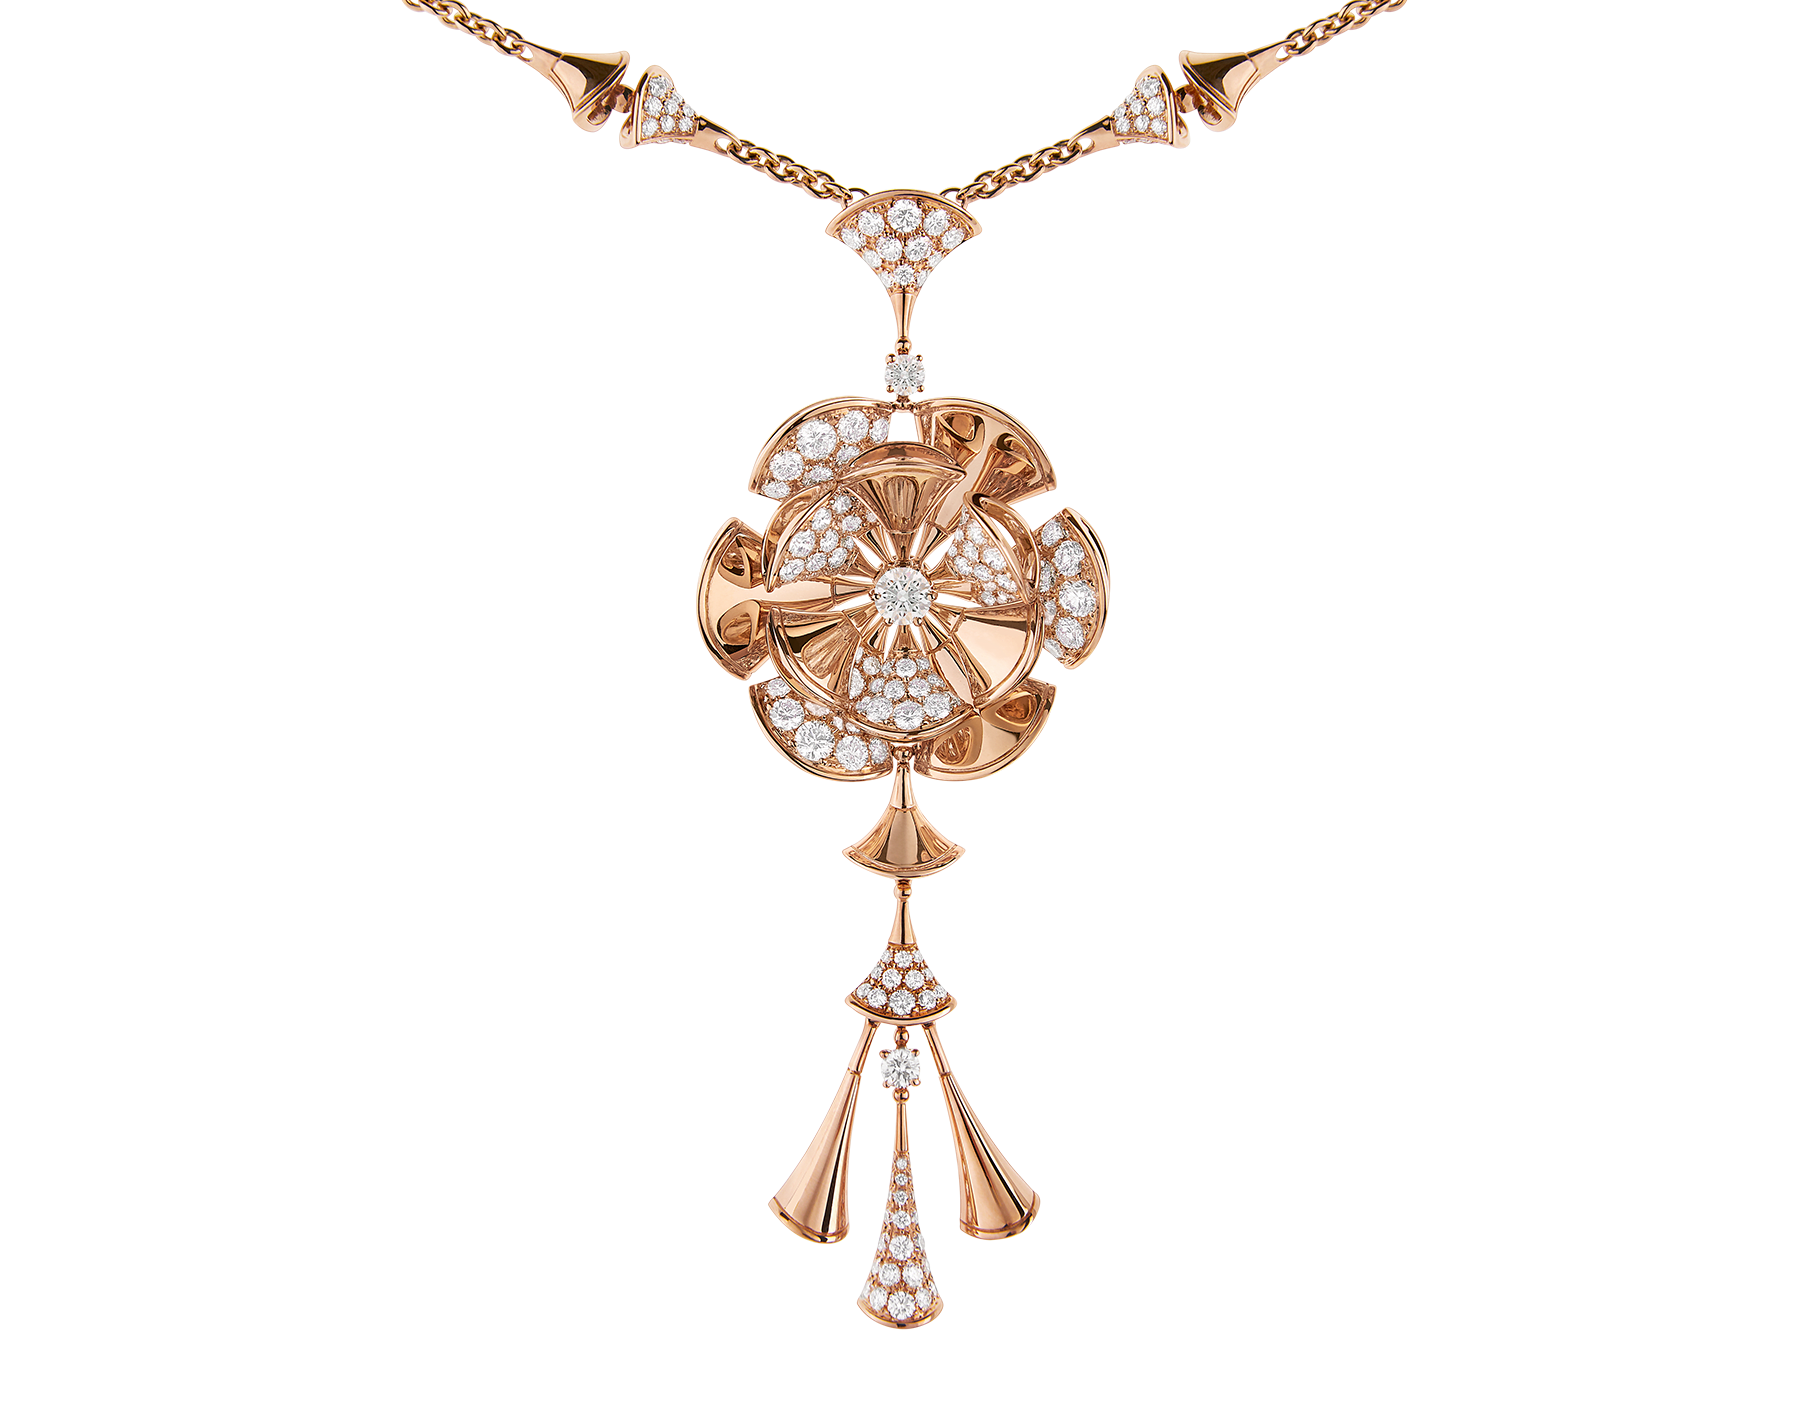 Collana DIVAS' DREAM in oro rosa 18 kt con tre diamanti e pavé di diamanti. 348361 image 3